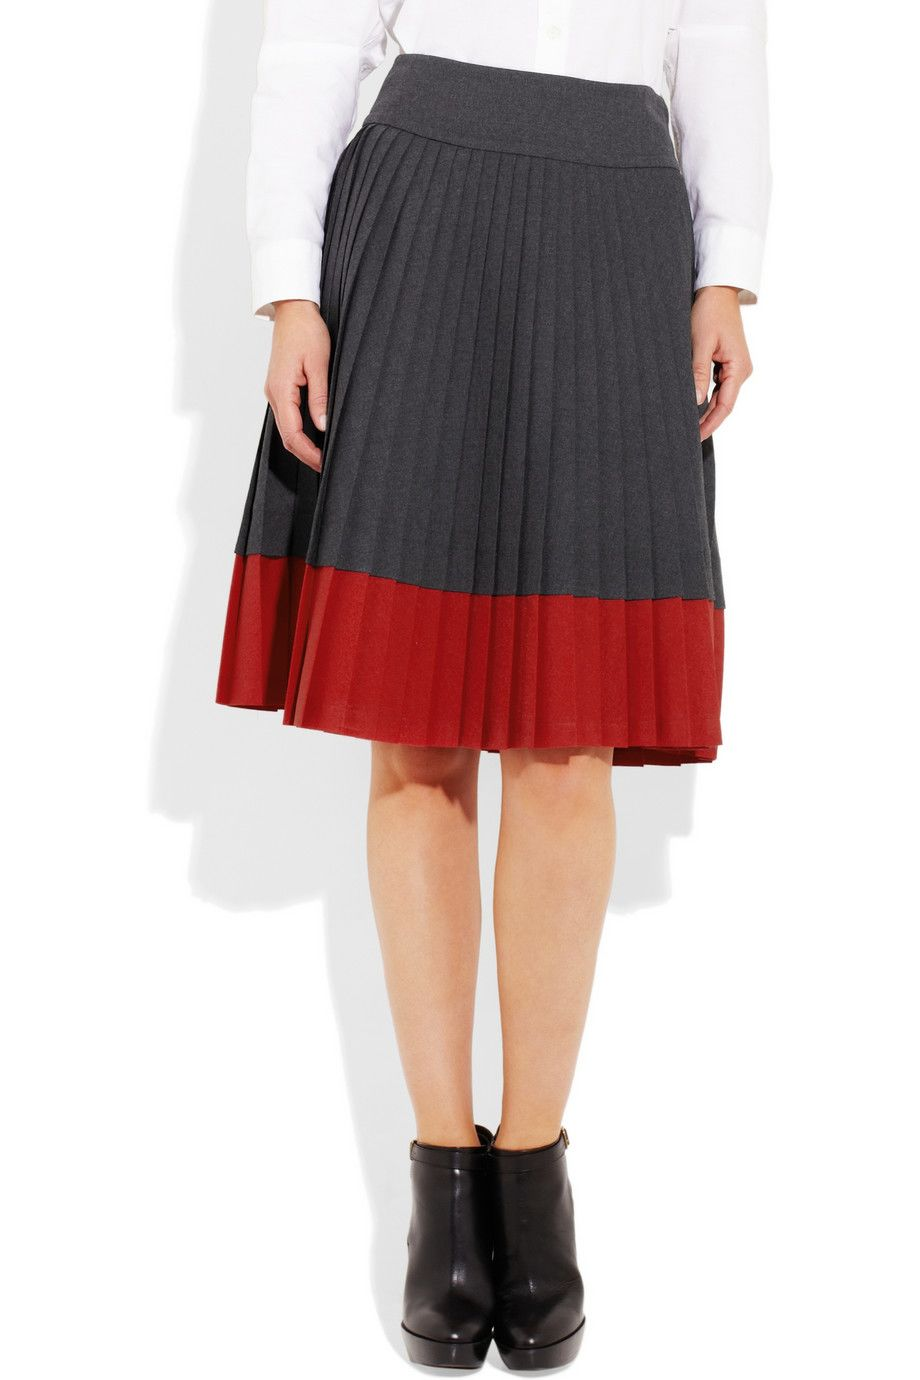 Marc Jacobs Tania tonic pleated skirt 2 Preview Images